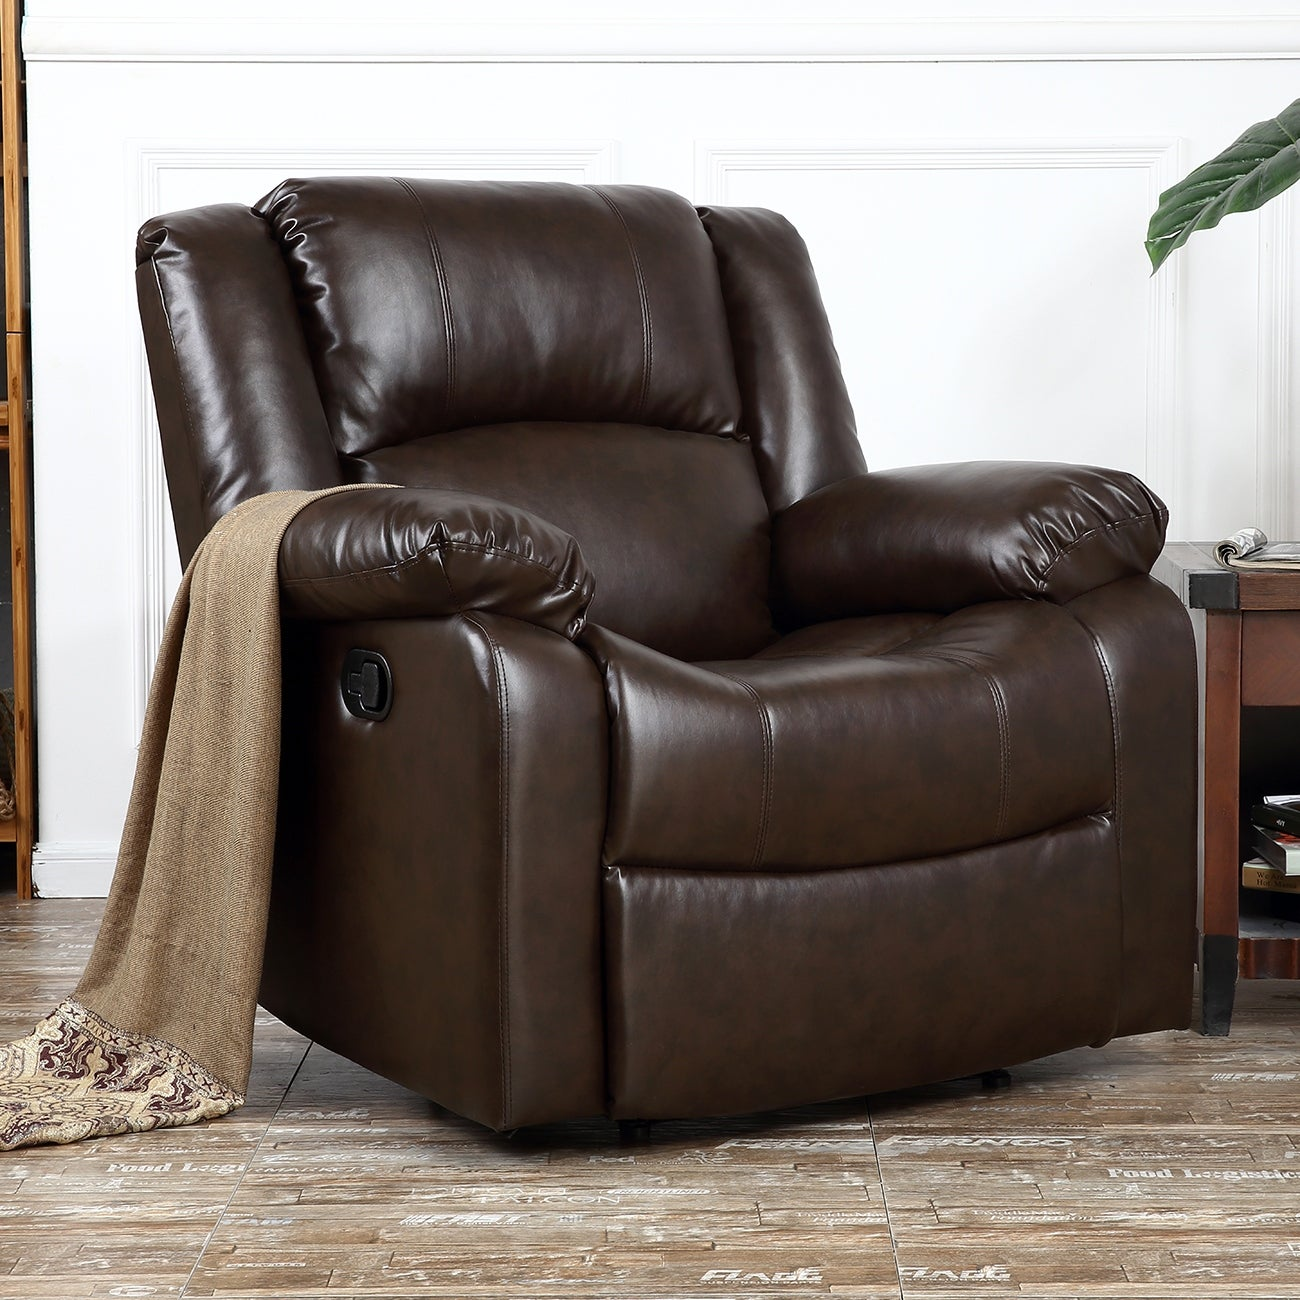 Amazing Buy Assembled Faux Leather Recliner Chairs Rocking Caraccident5 Cool Chair Designs And Ideas Caraccident5Info